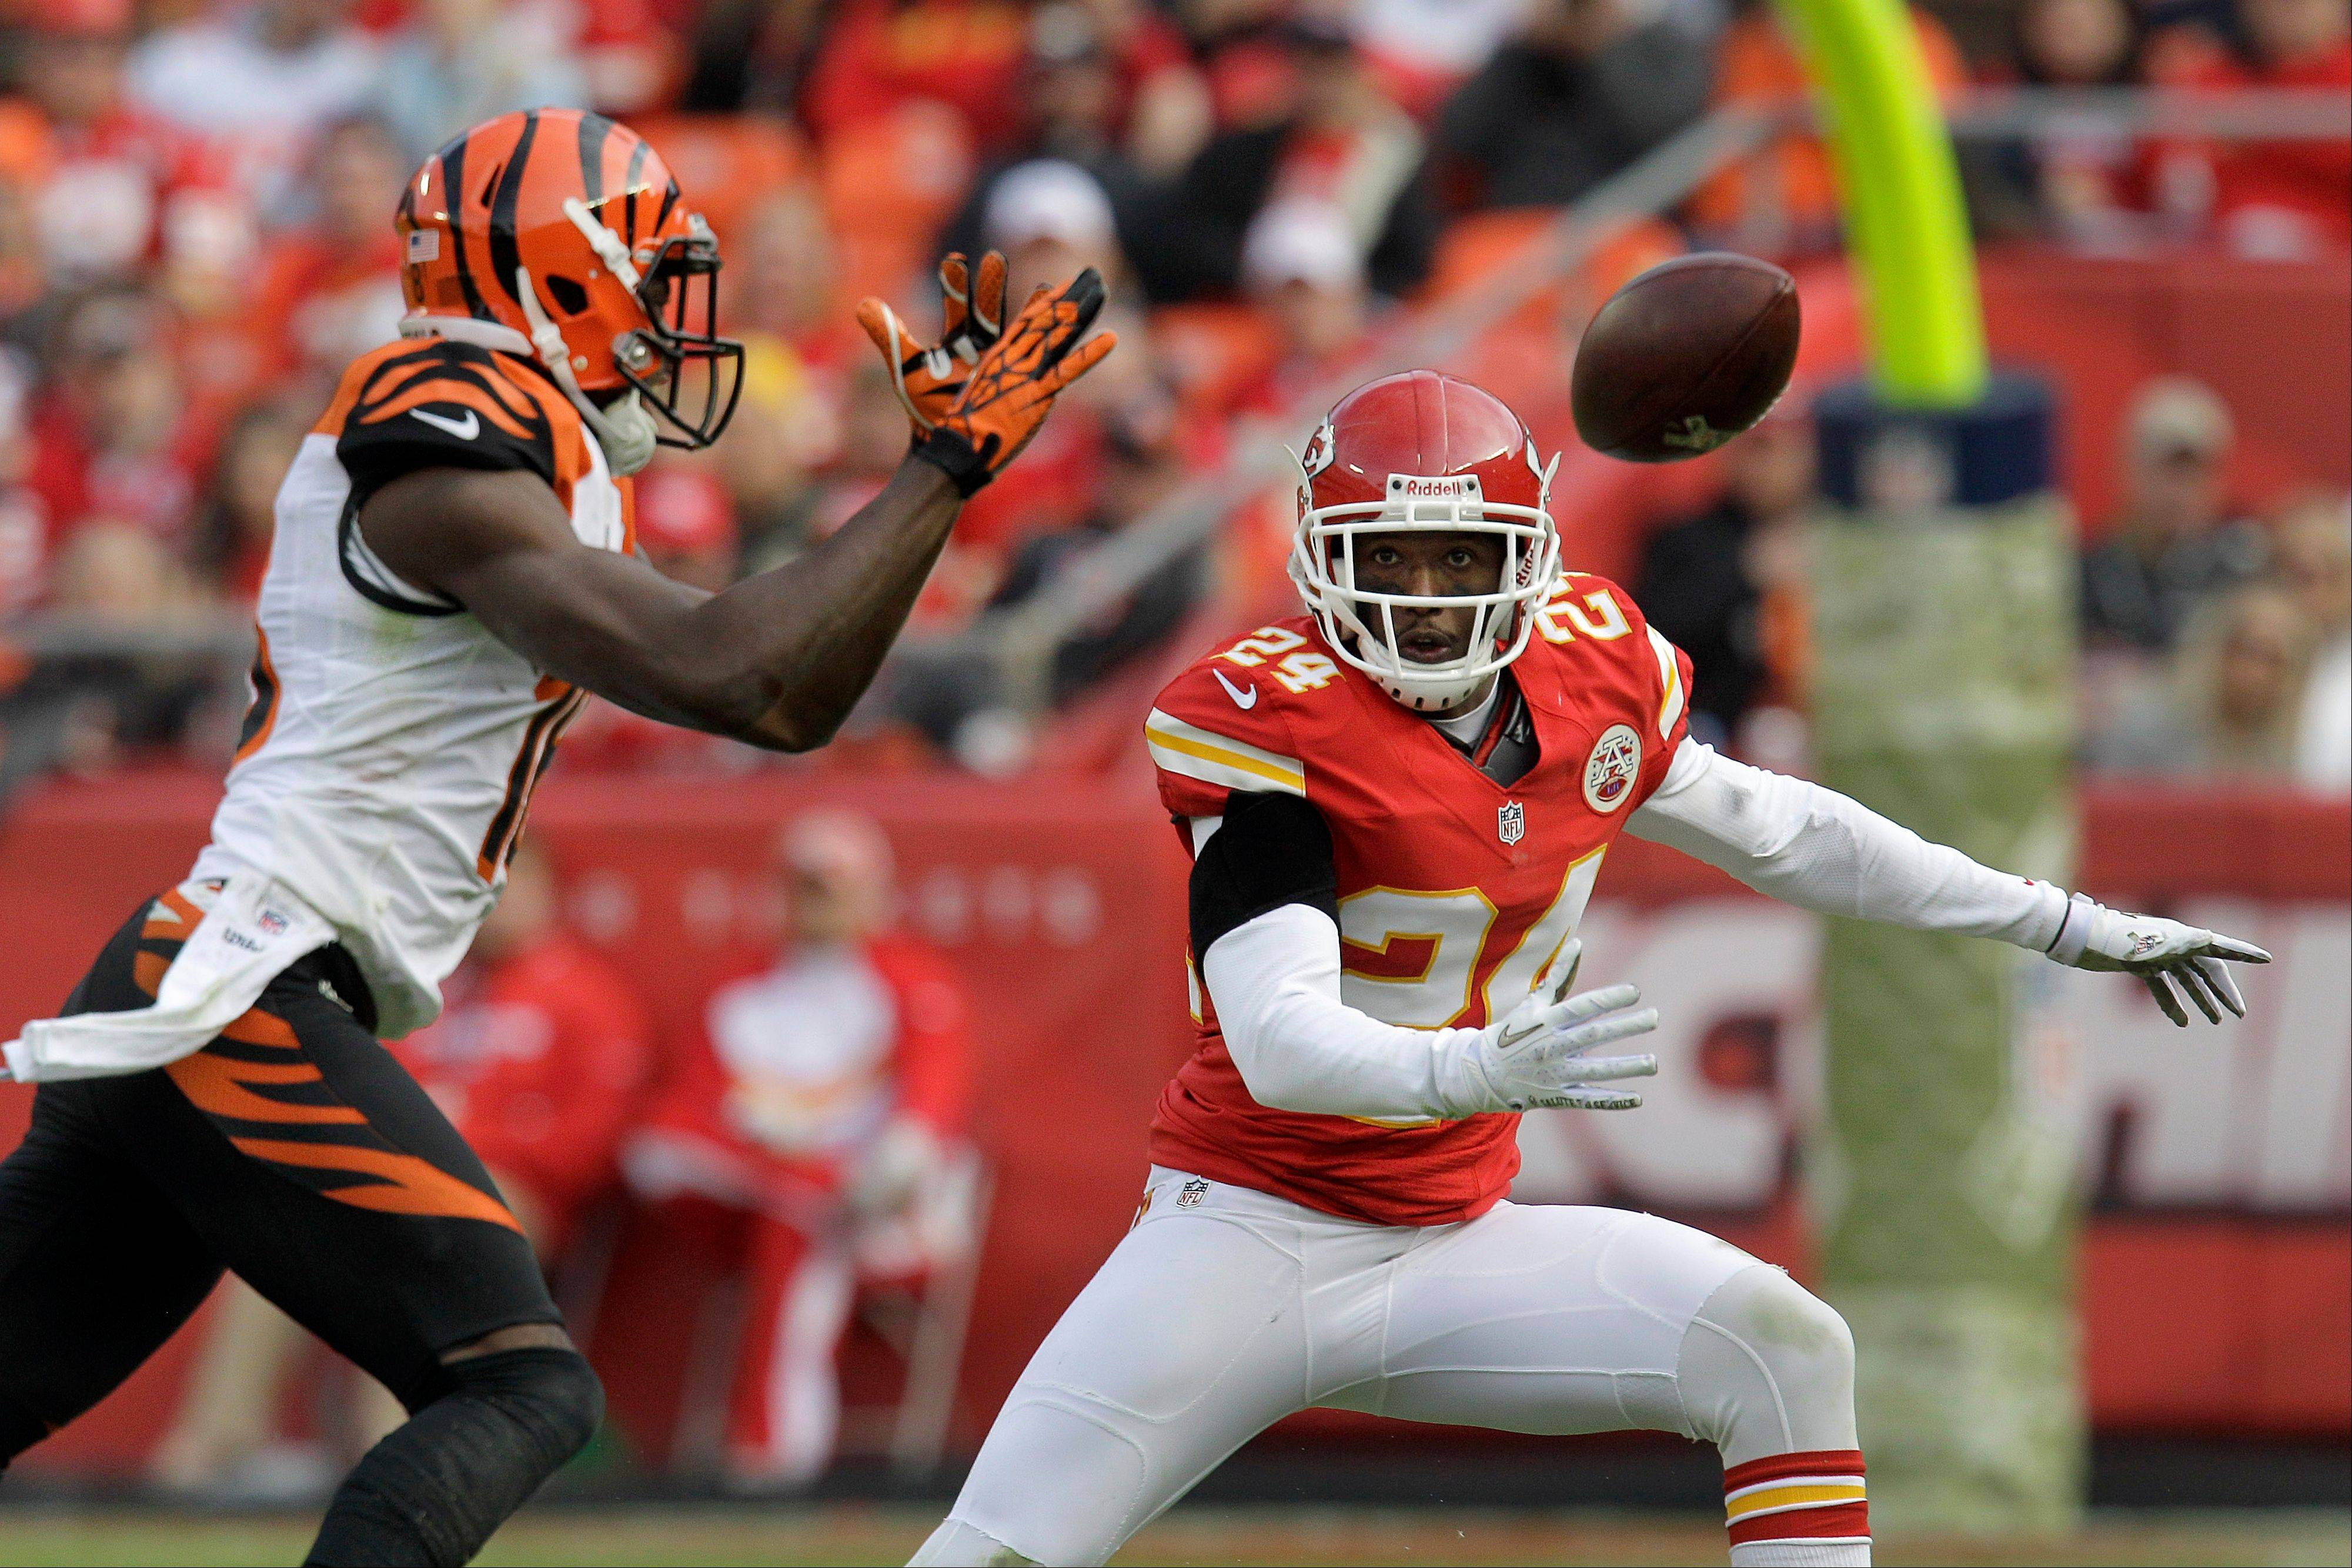 Kansas City Chiefs cornerback Brandon Flowers (24) and Cincinnati Bengals wide receiver A.J. Green chase a pass intended for Green during the second half Sundayin Kansas City, Mo.